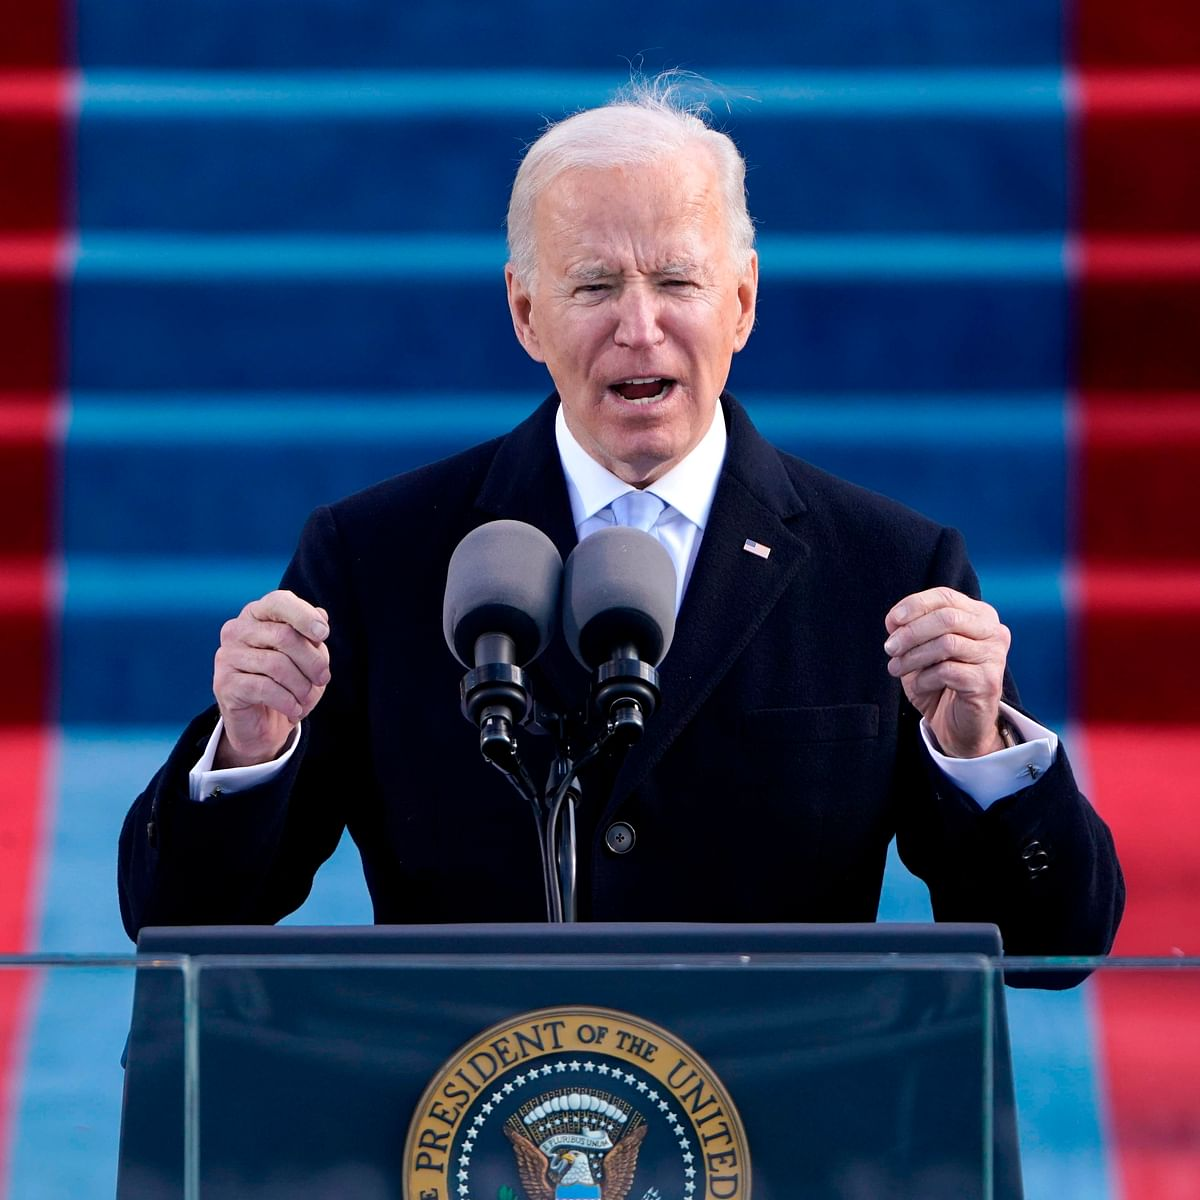 From rejoining Paris Treaty to halting construction of border wall - President Biden hits the ground running with executive orders